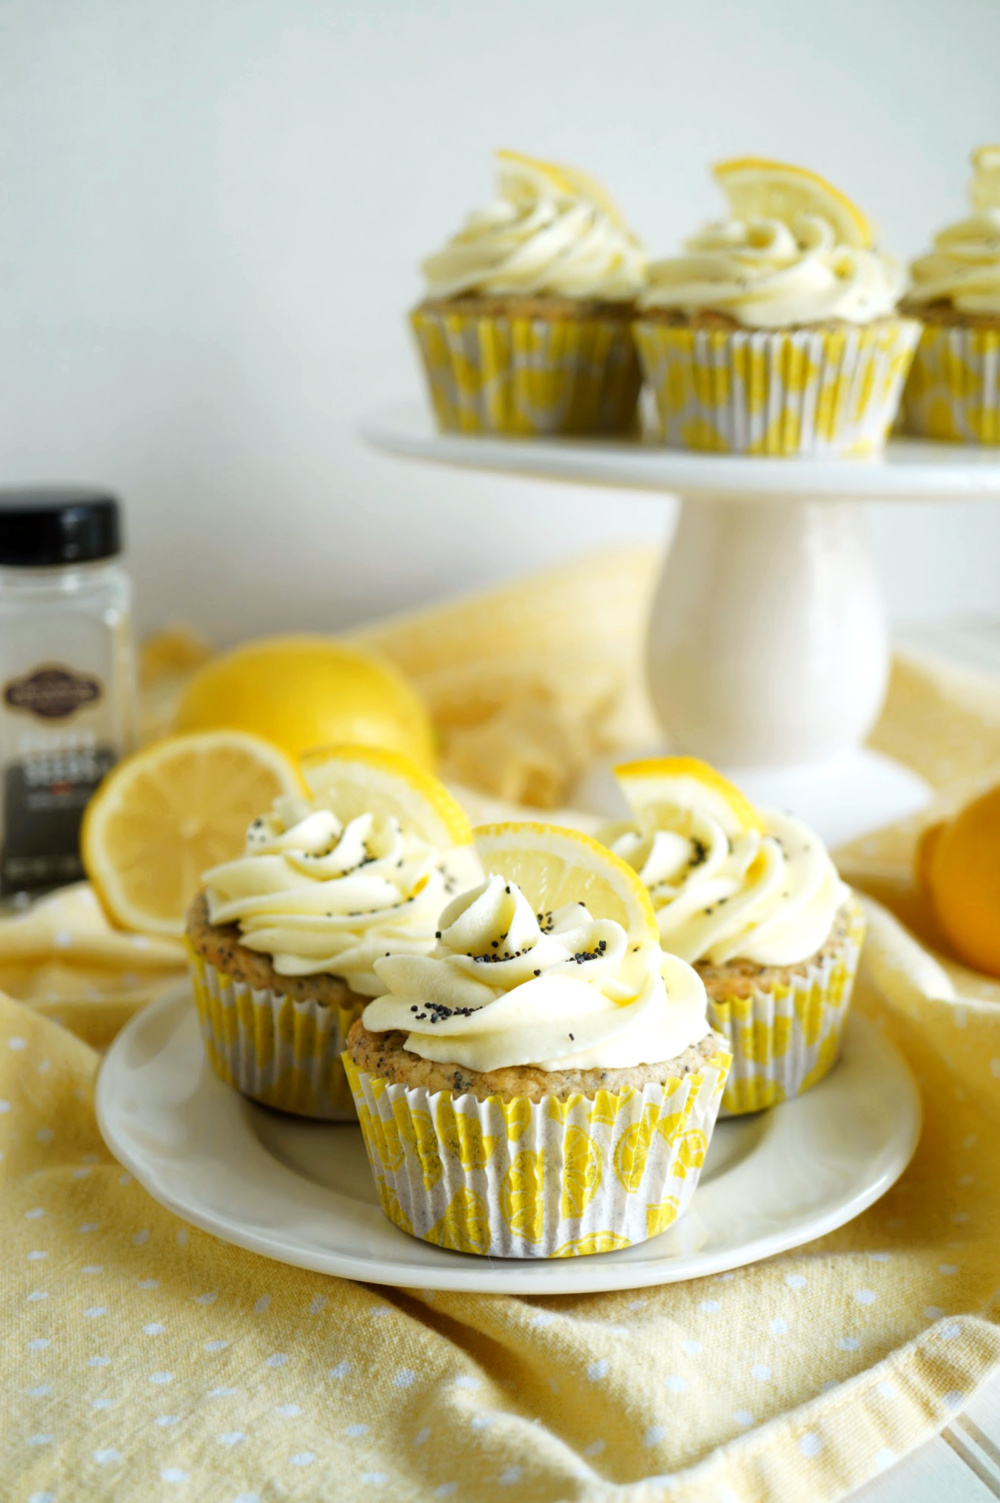 vegan lemon poppyseed cupcakes on a plate